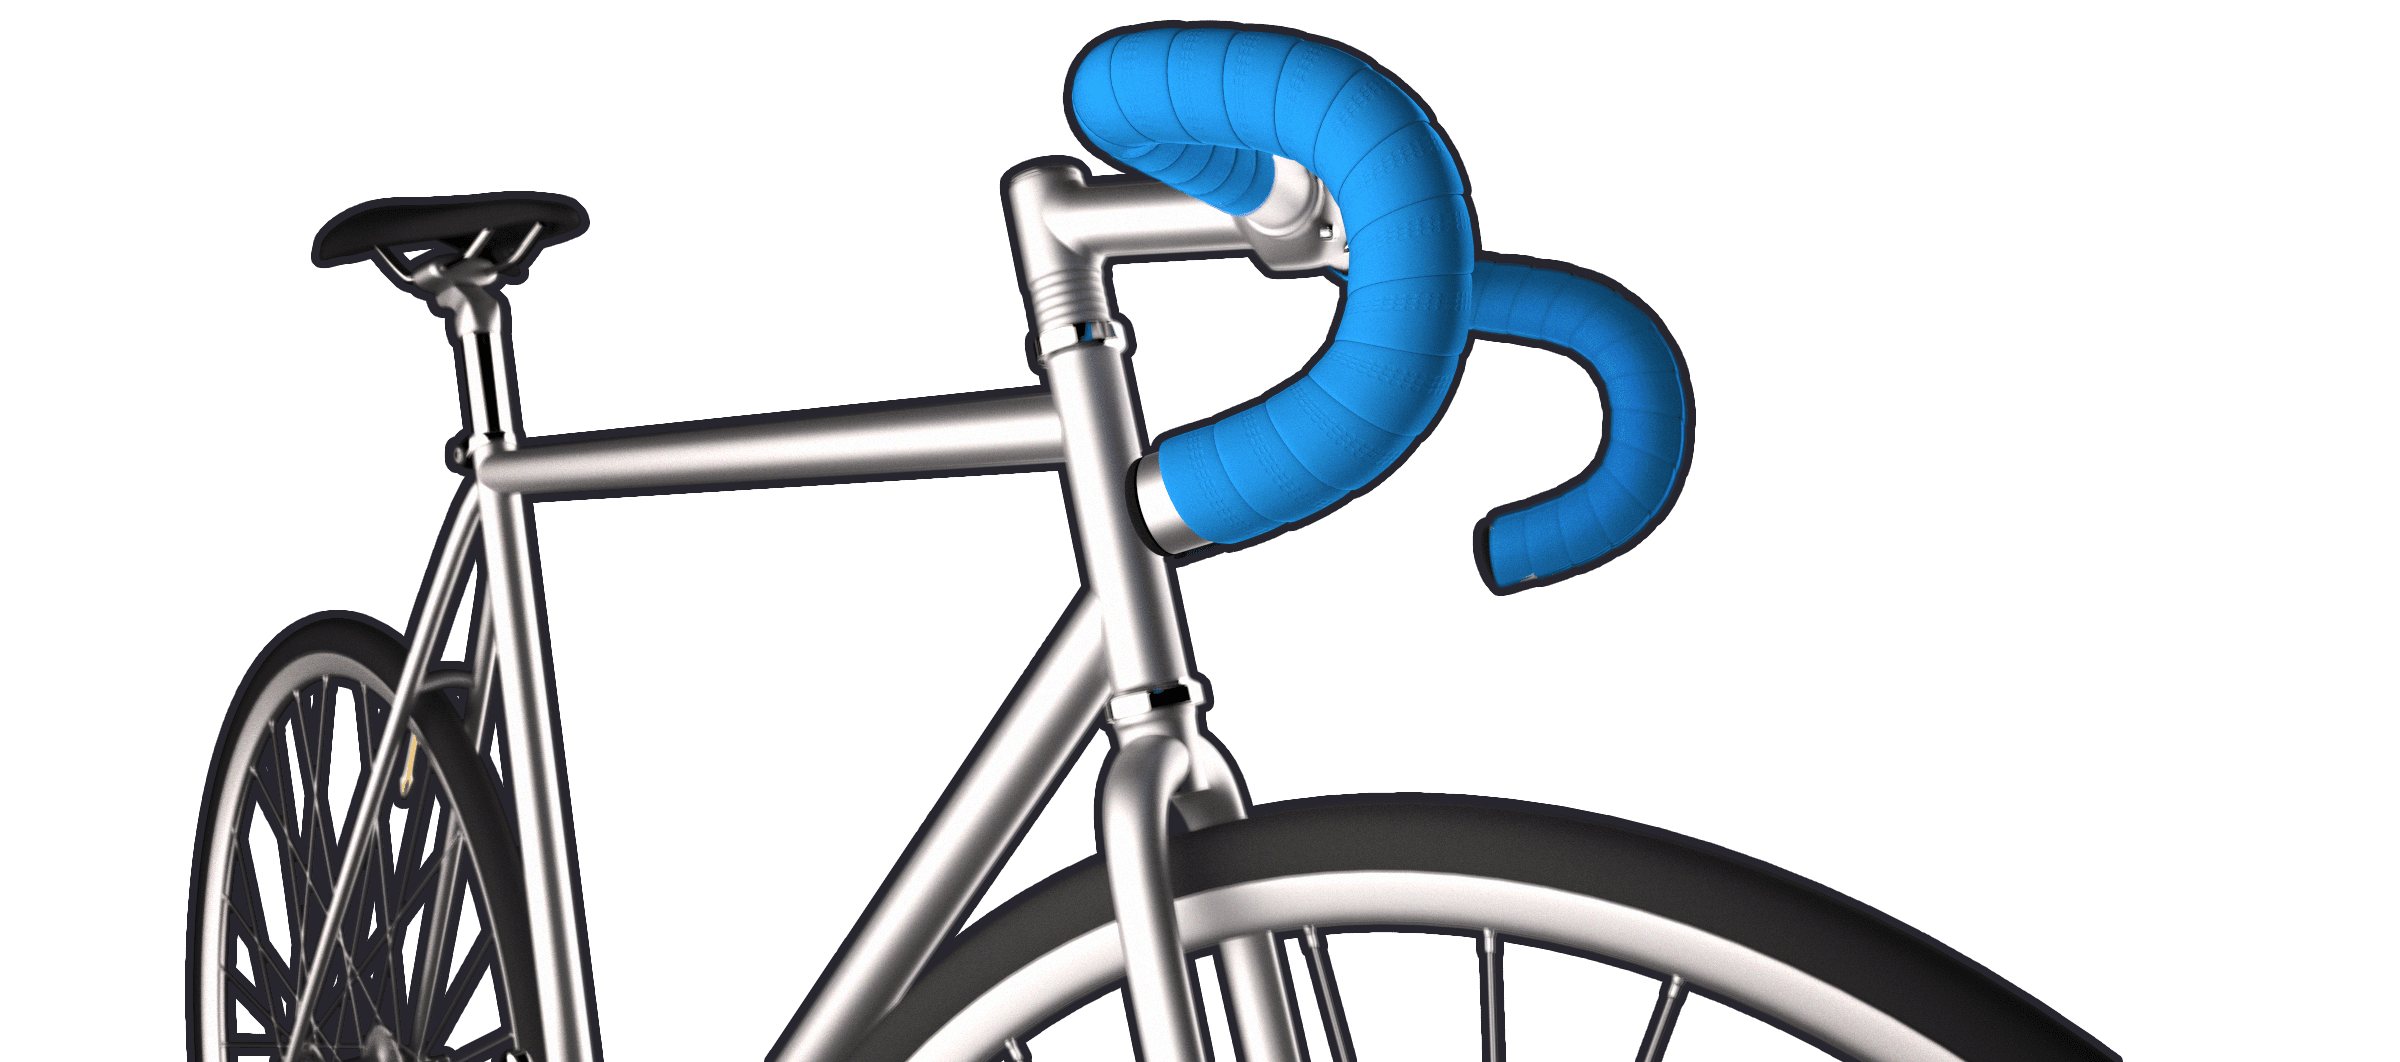 In case of theft, track your bike and get it back